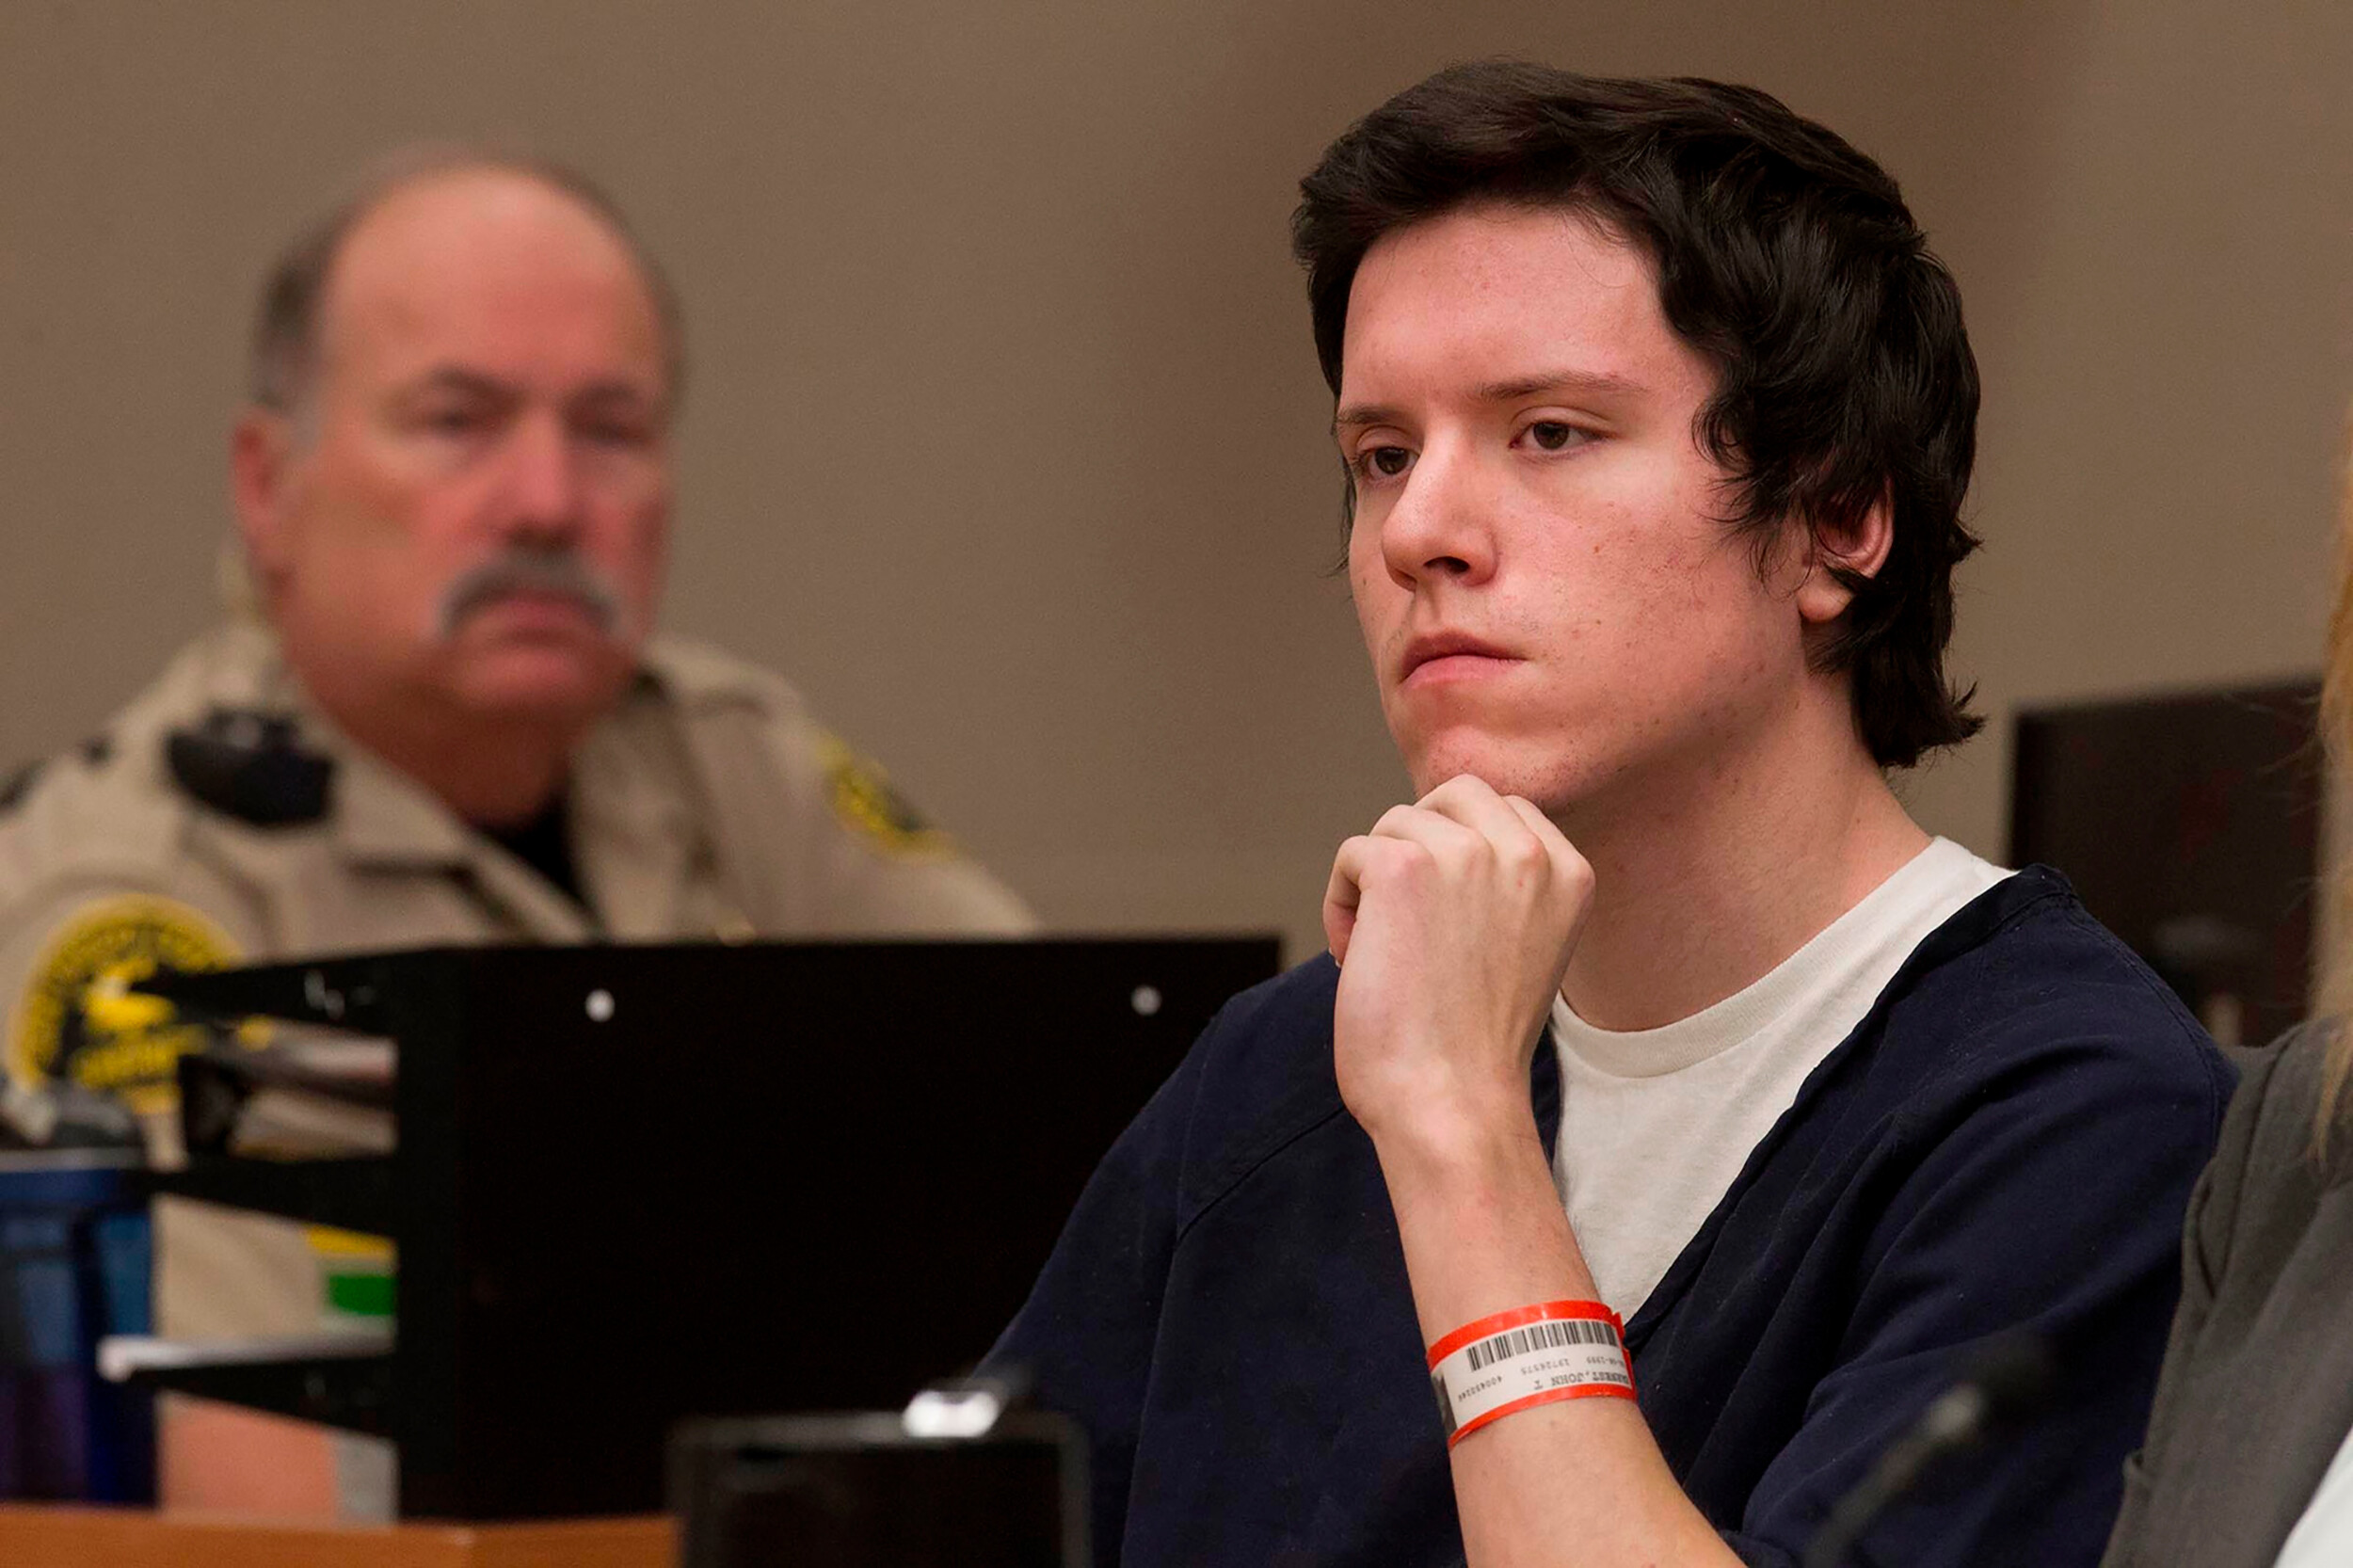 California synagogue shooter sentenced to life in prison without the possibility of parole